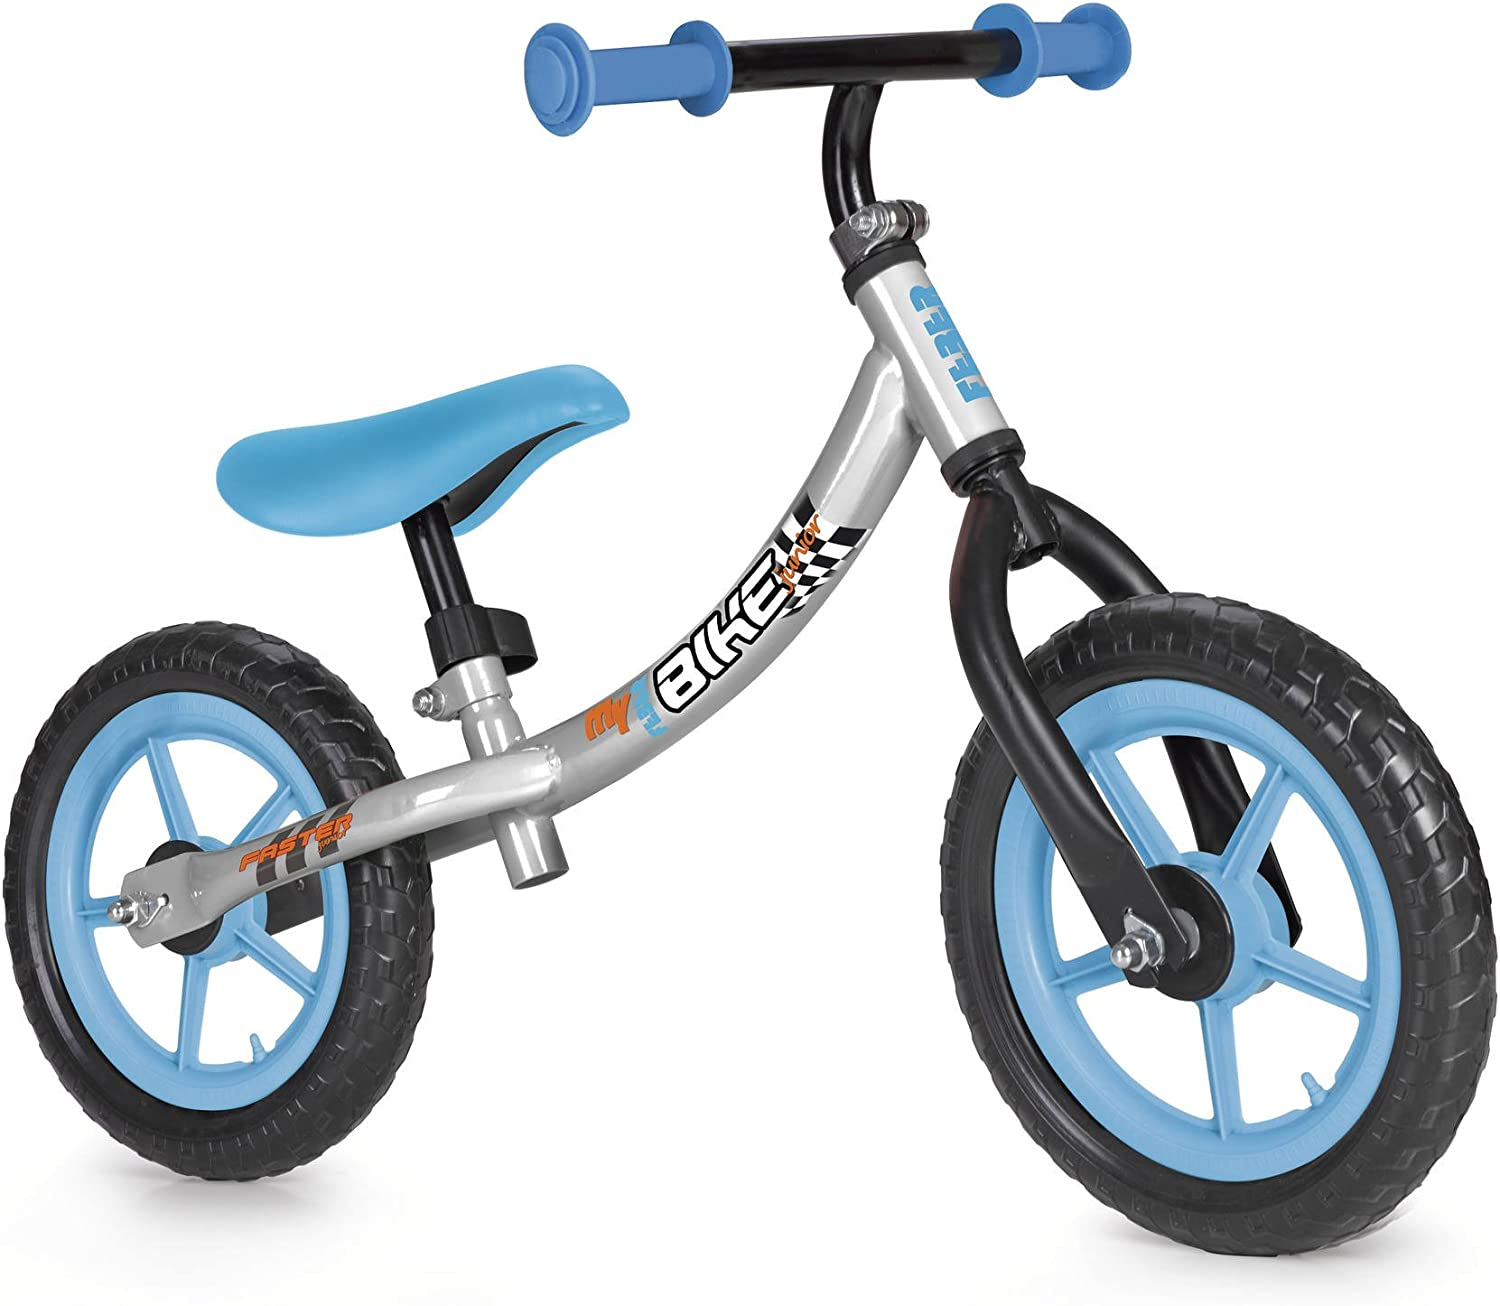 FEBER- My Bike Junior, Color Gris (Famosa 800010964): Amazon.es: Juguetes y juegos